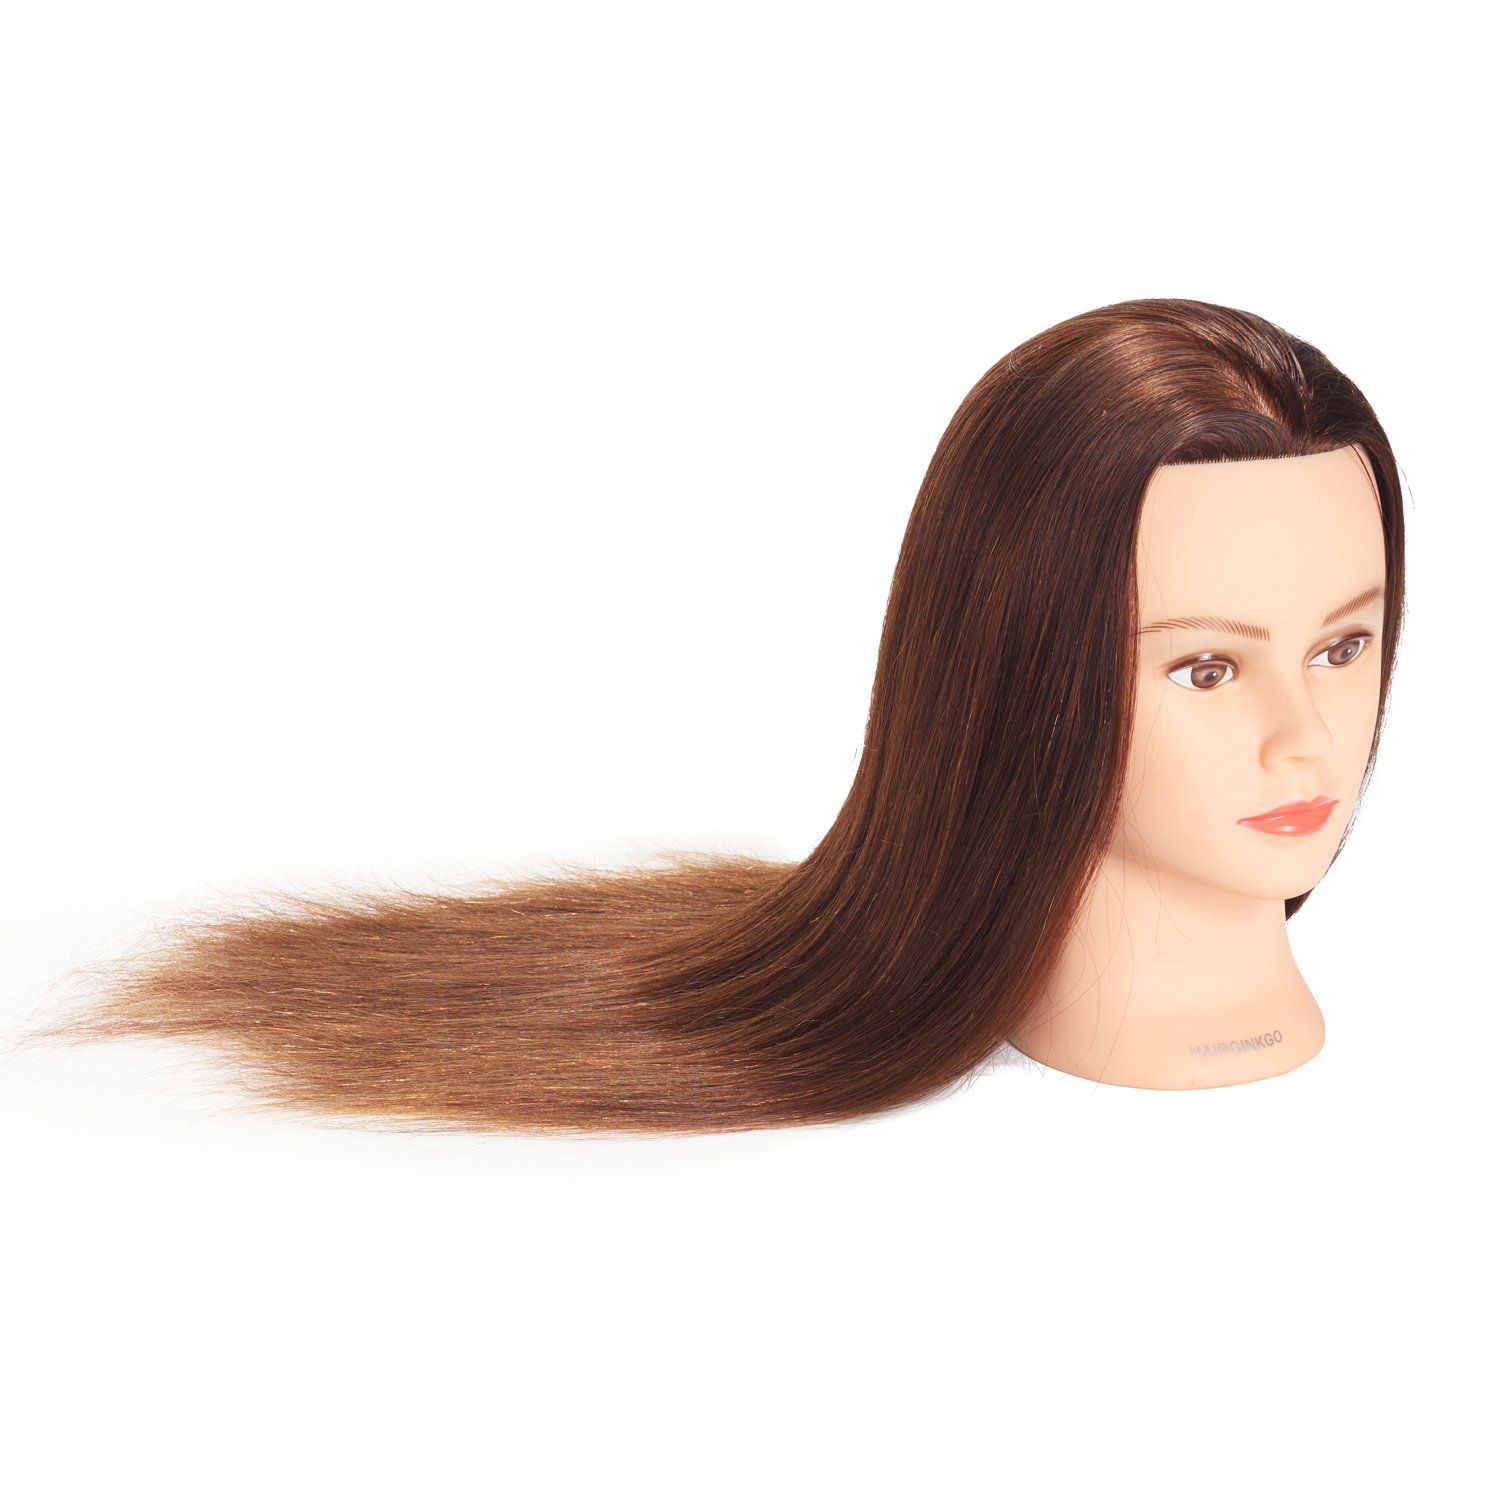 Hairginkgo Mannequin Head 24-26 100/% Human Hair Manikin Head Hairdresser Training Head Cosmetology Doll Head for Styling Dye Cutting Braiding Practice with Clamp Stand 91812W0418